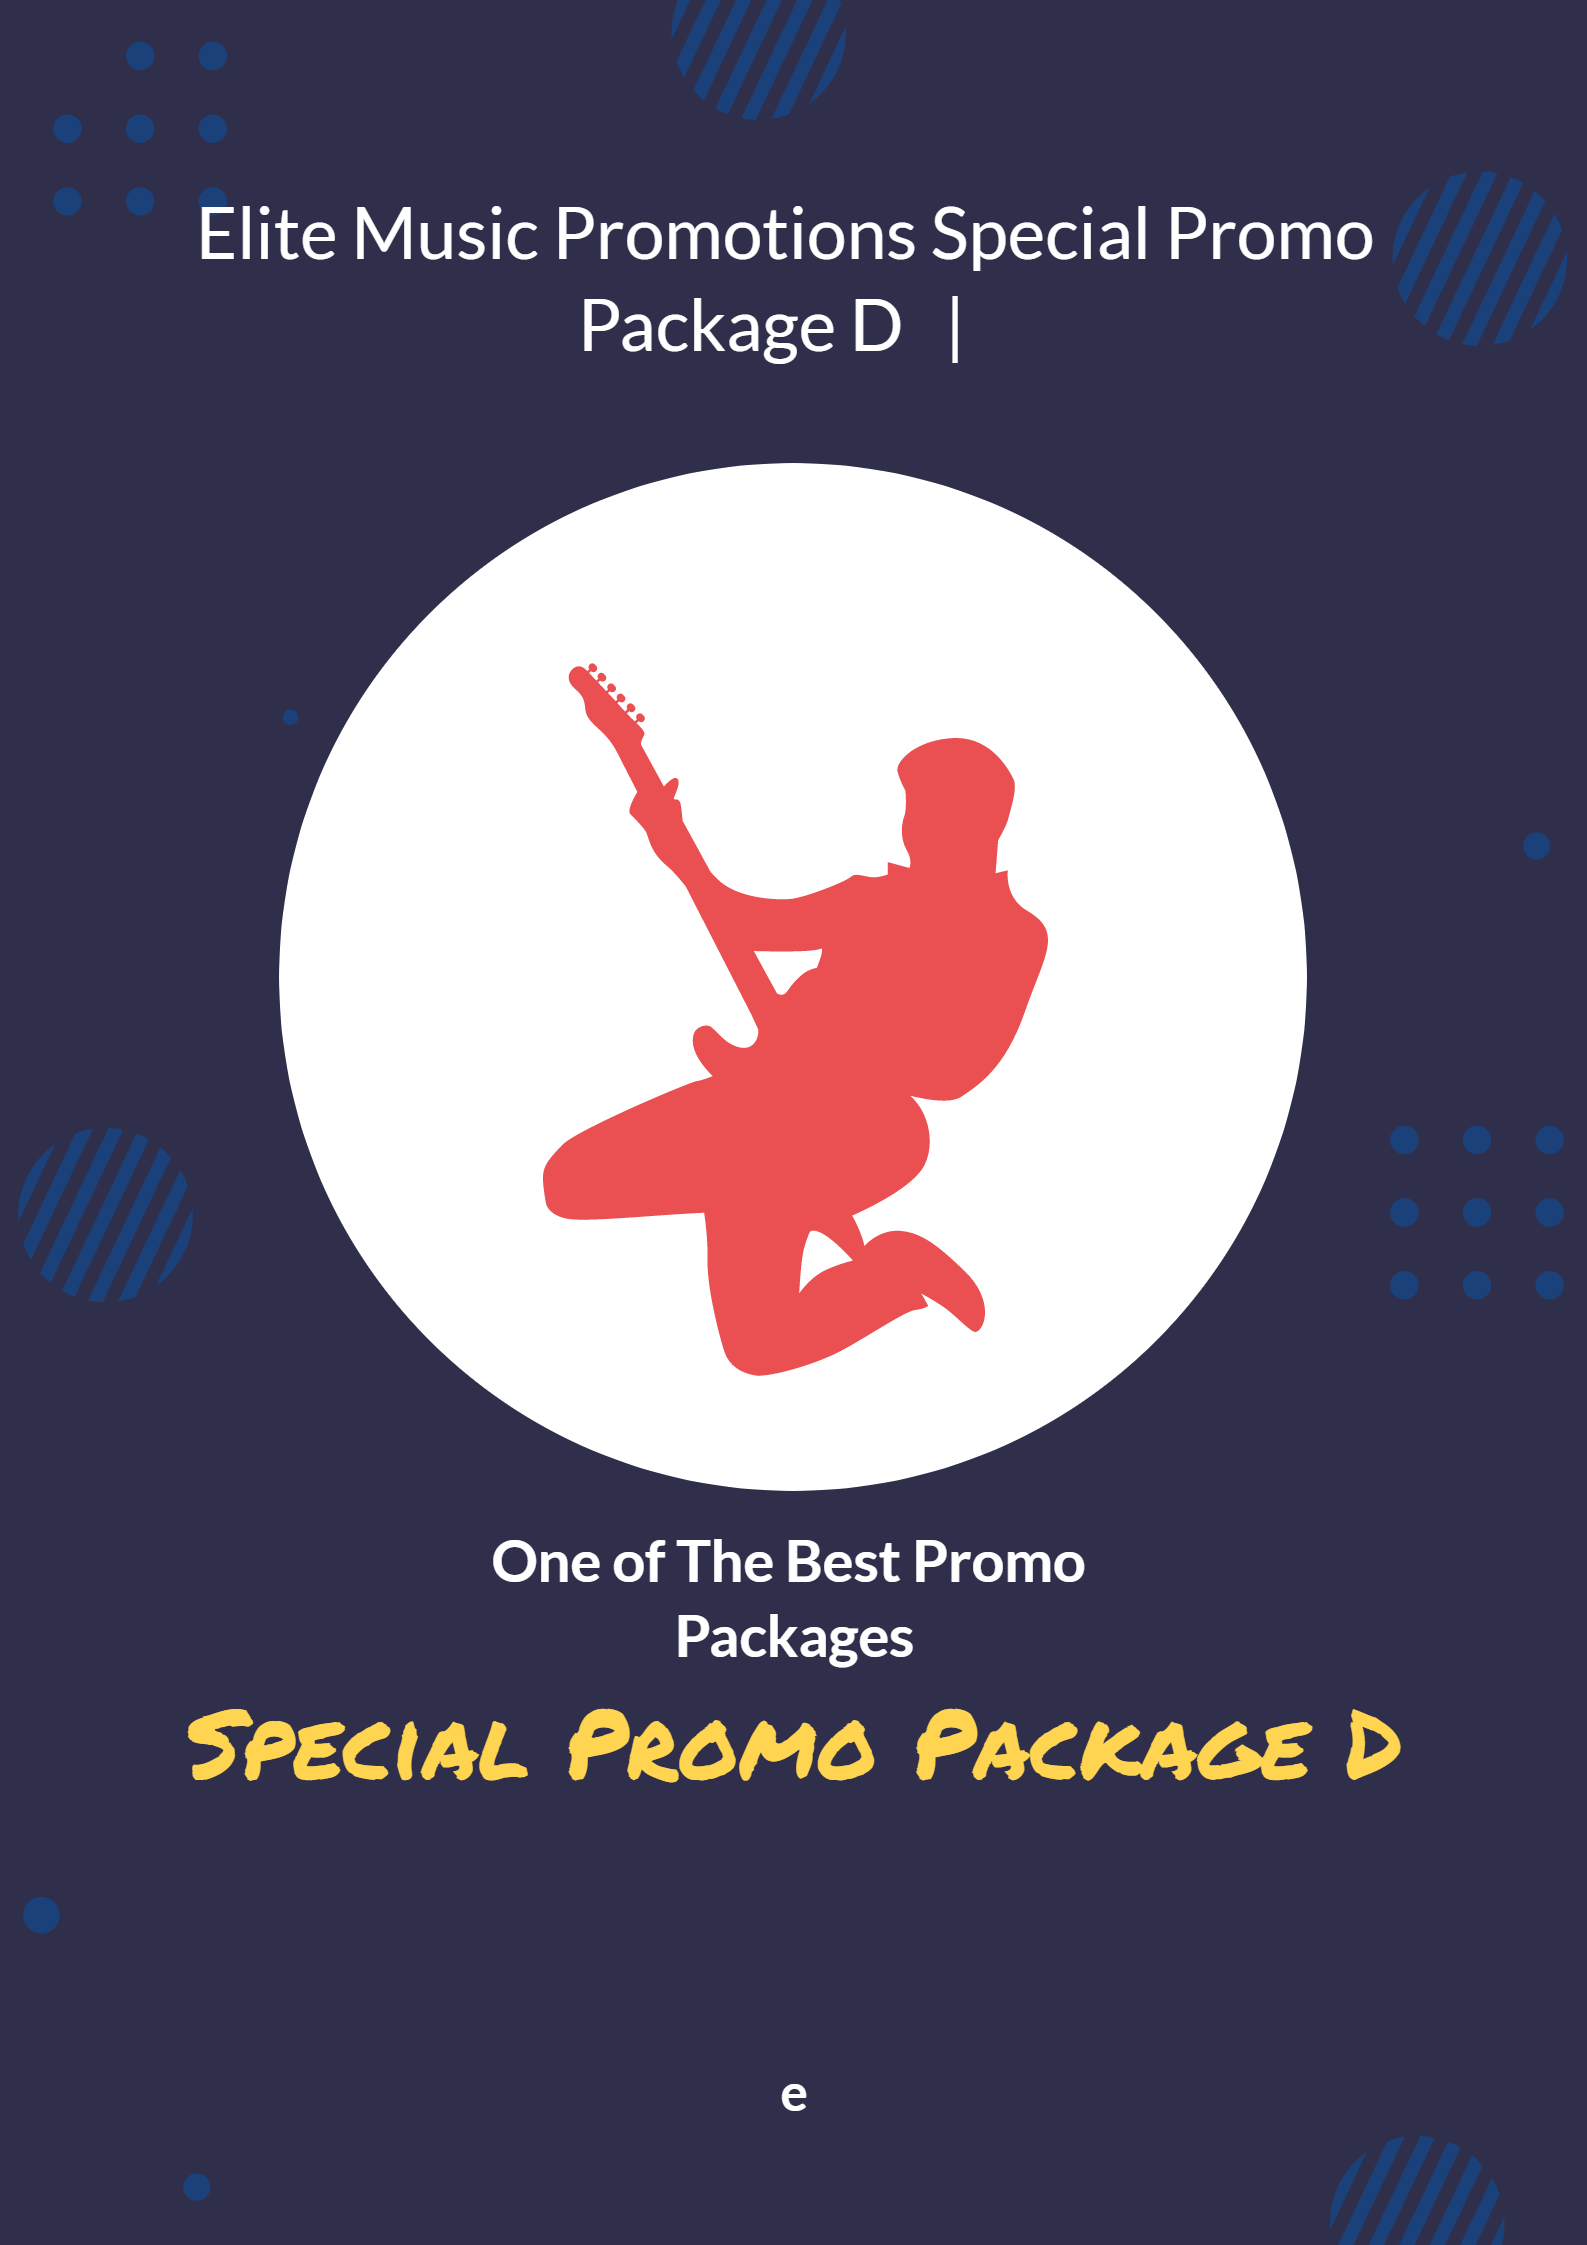 Special Promo Package D